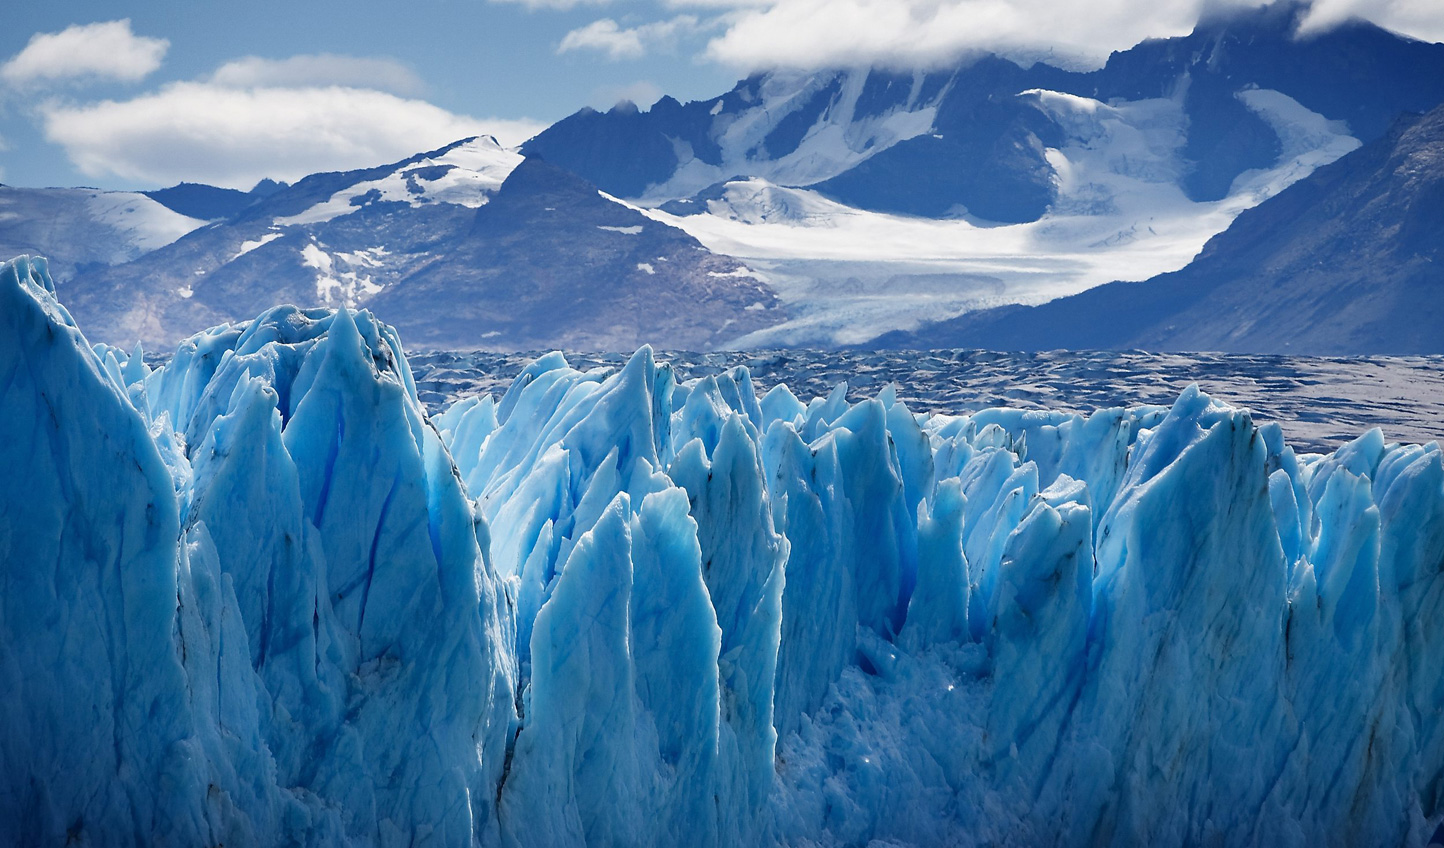 Marvel at the jagged glaciers of Patagonia